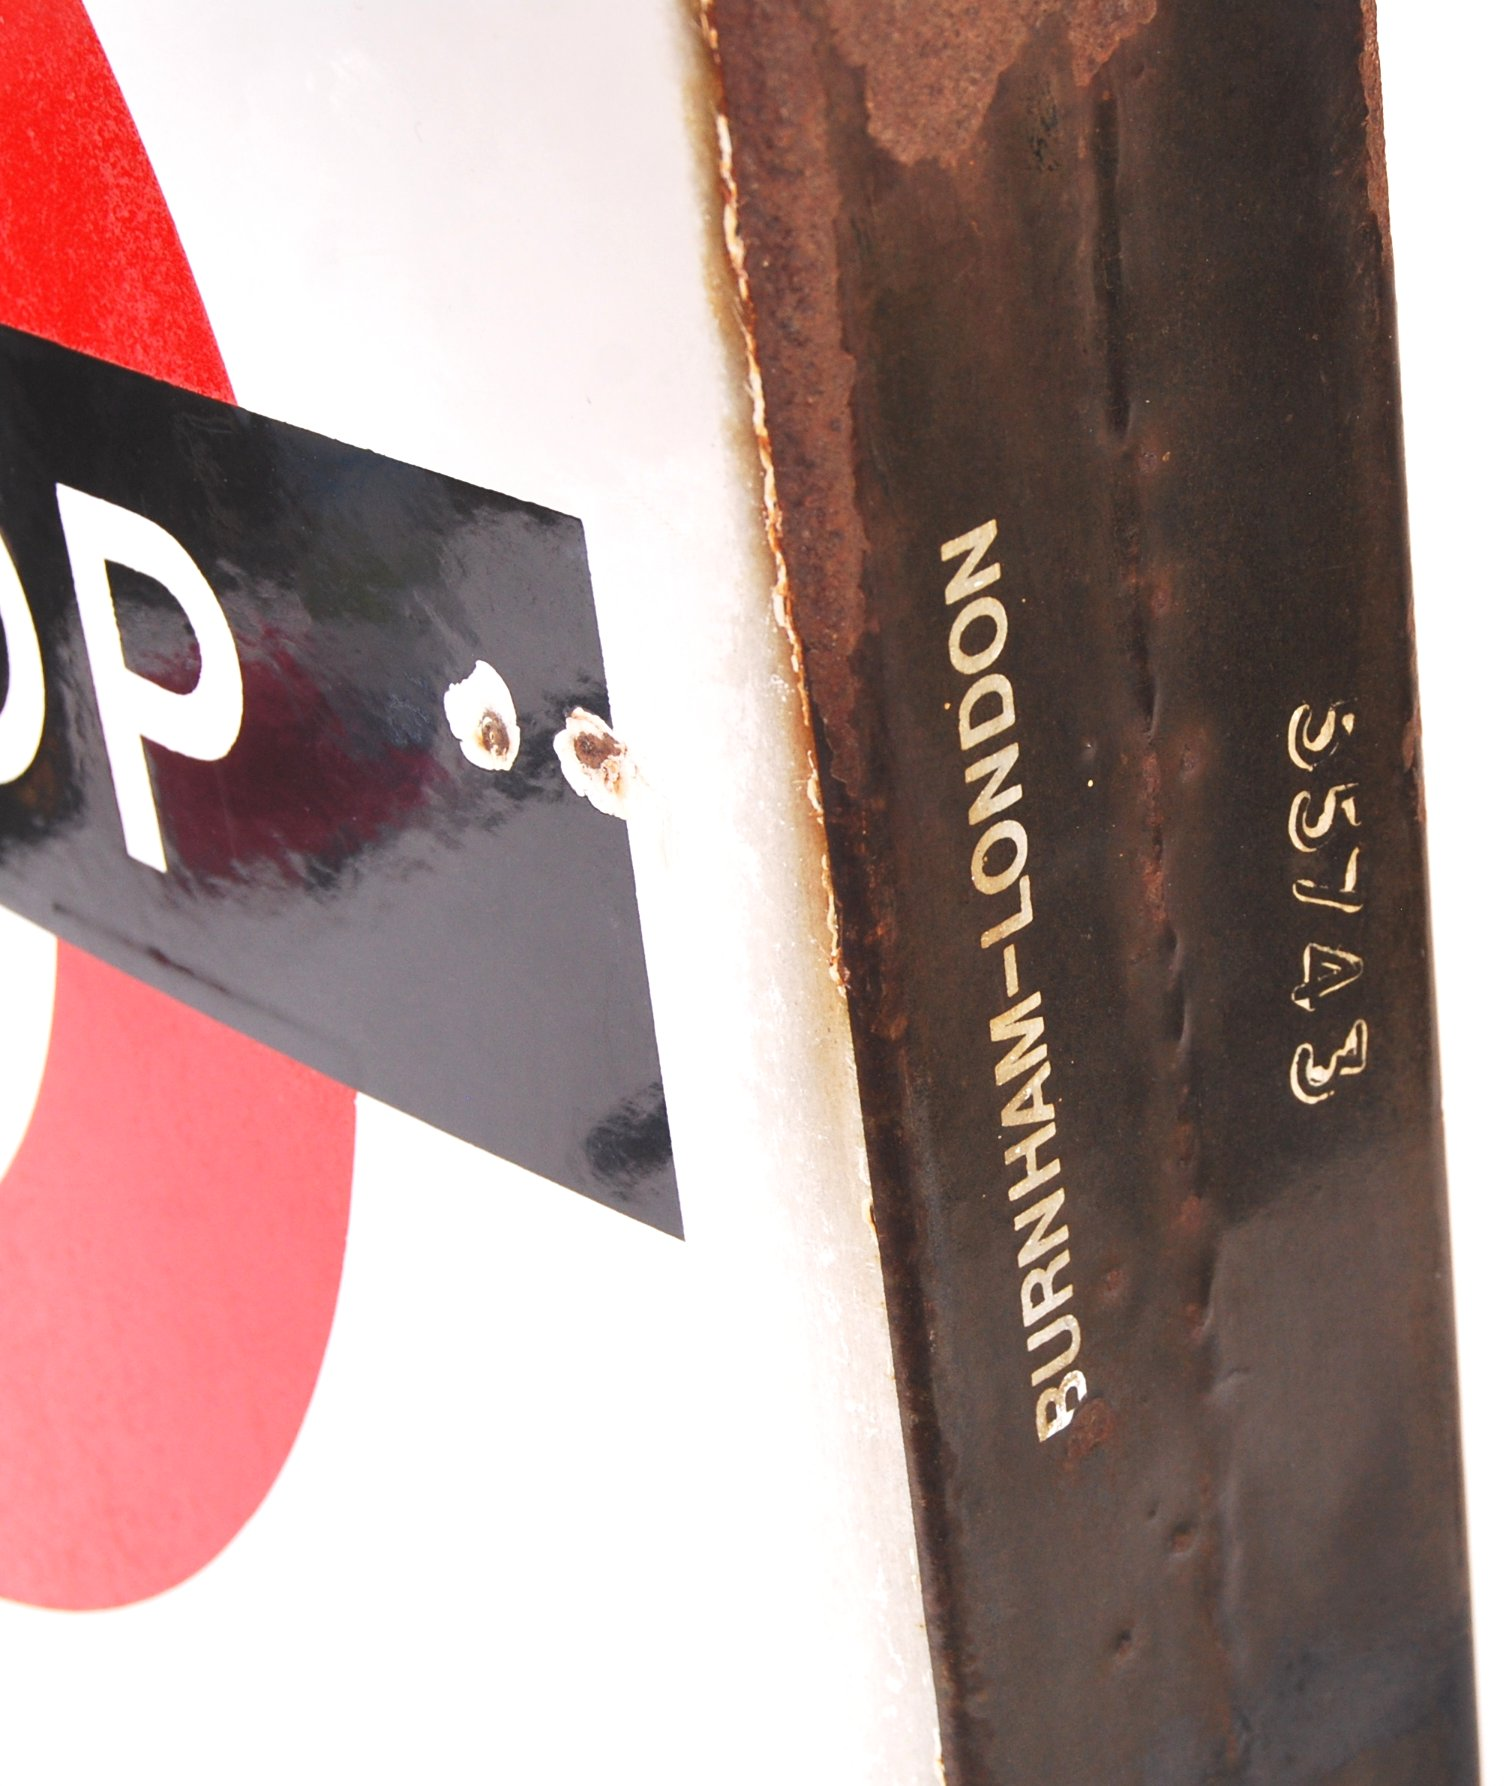 RARE VINTAGE LONDON TRANSPORT ' BUS STOP ' ENAMEL DOUBLE SIDED SIGN - Image 4 of 4